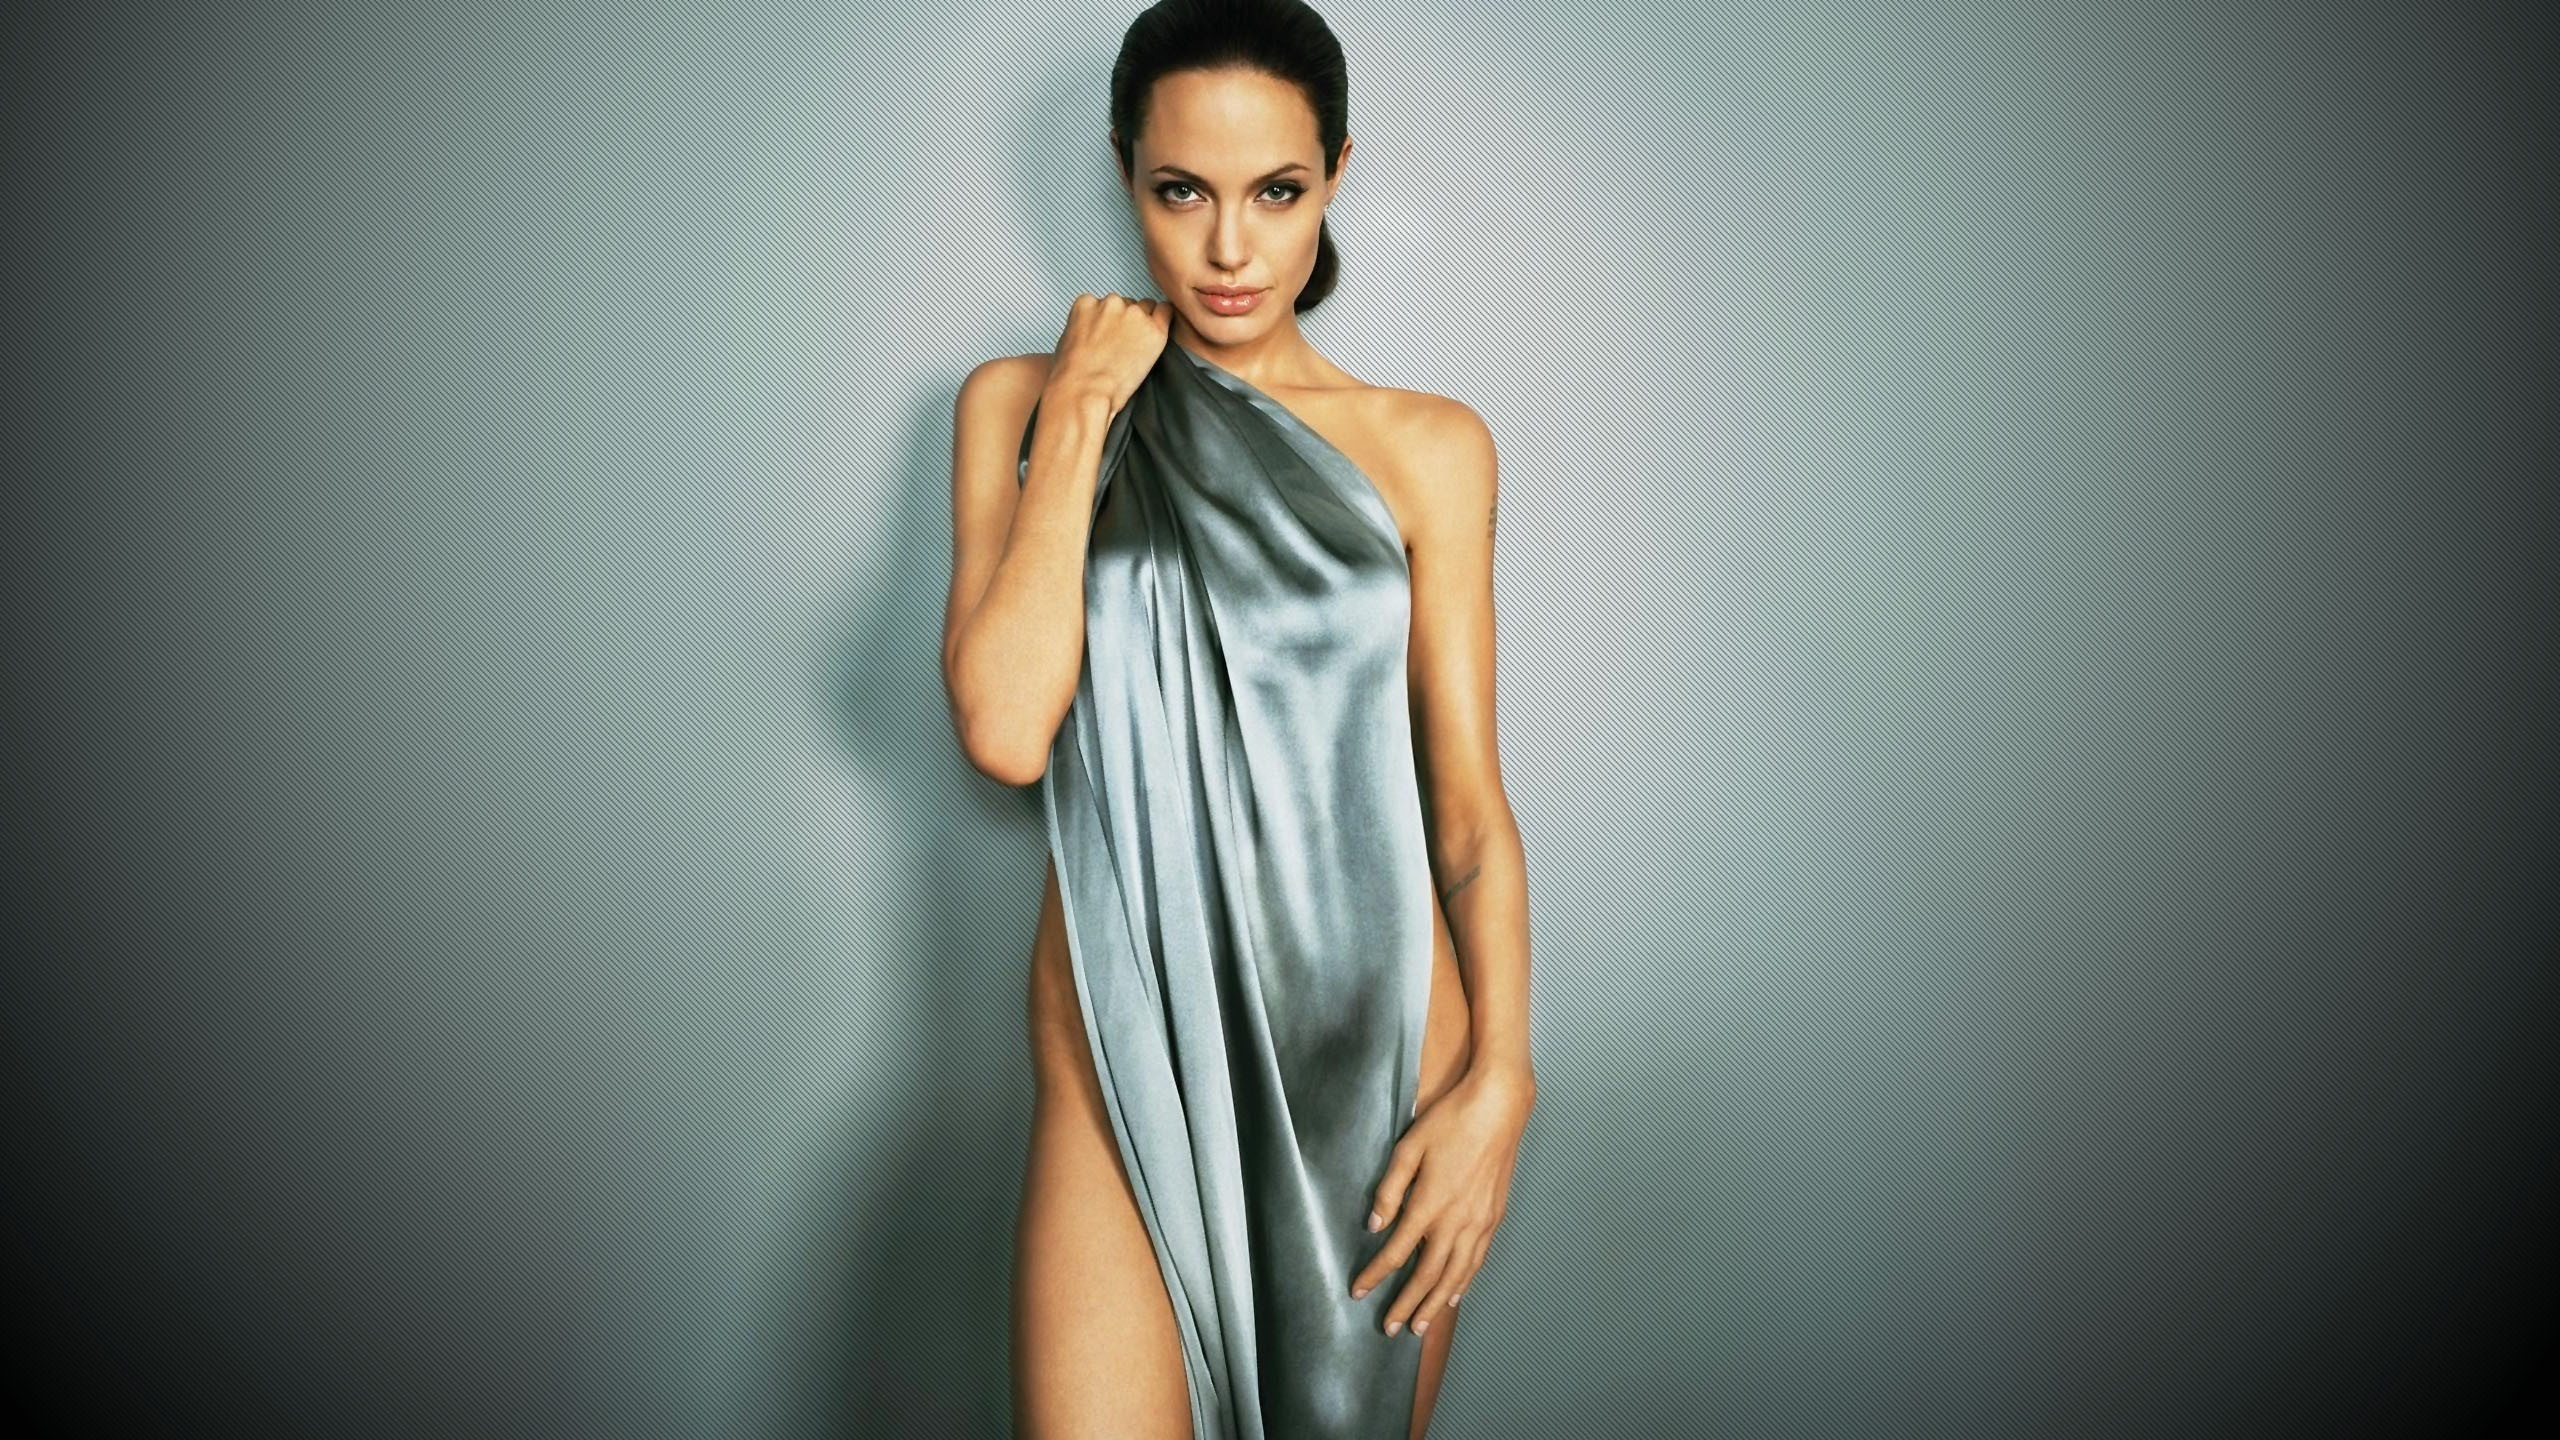 Angelina Jolie Hot And Sexy Pics angelina jolie hot & sexy images, videos and photos